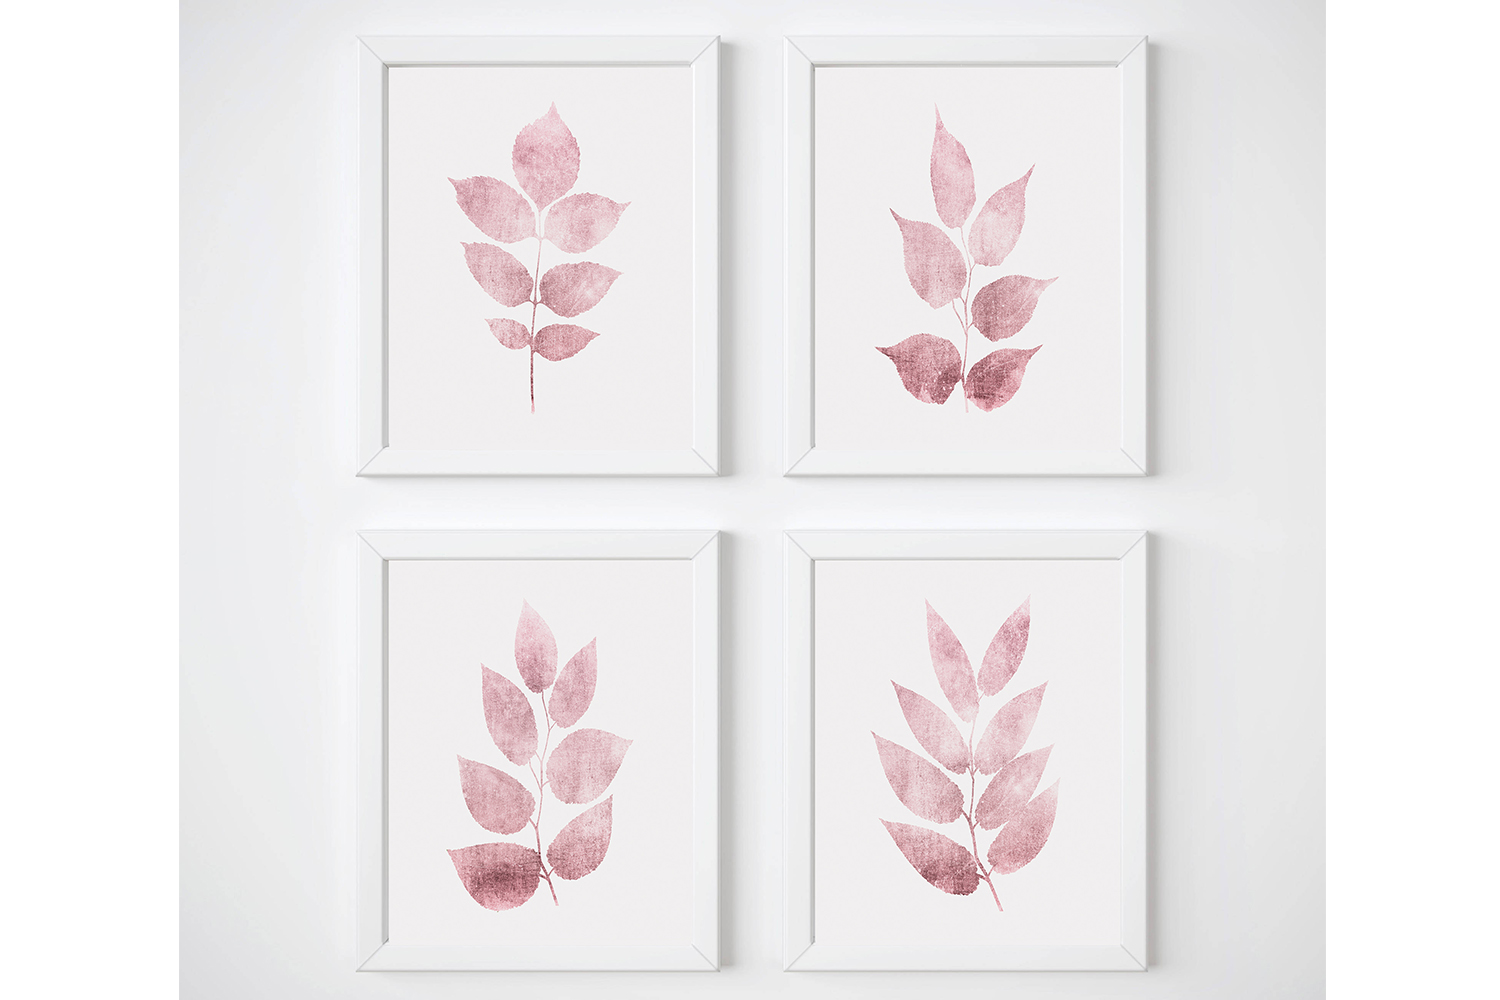 Nursery Botanical Print, Pink Leaf Prints, Leaf Wall Art Set example image 1